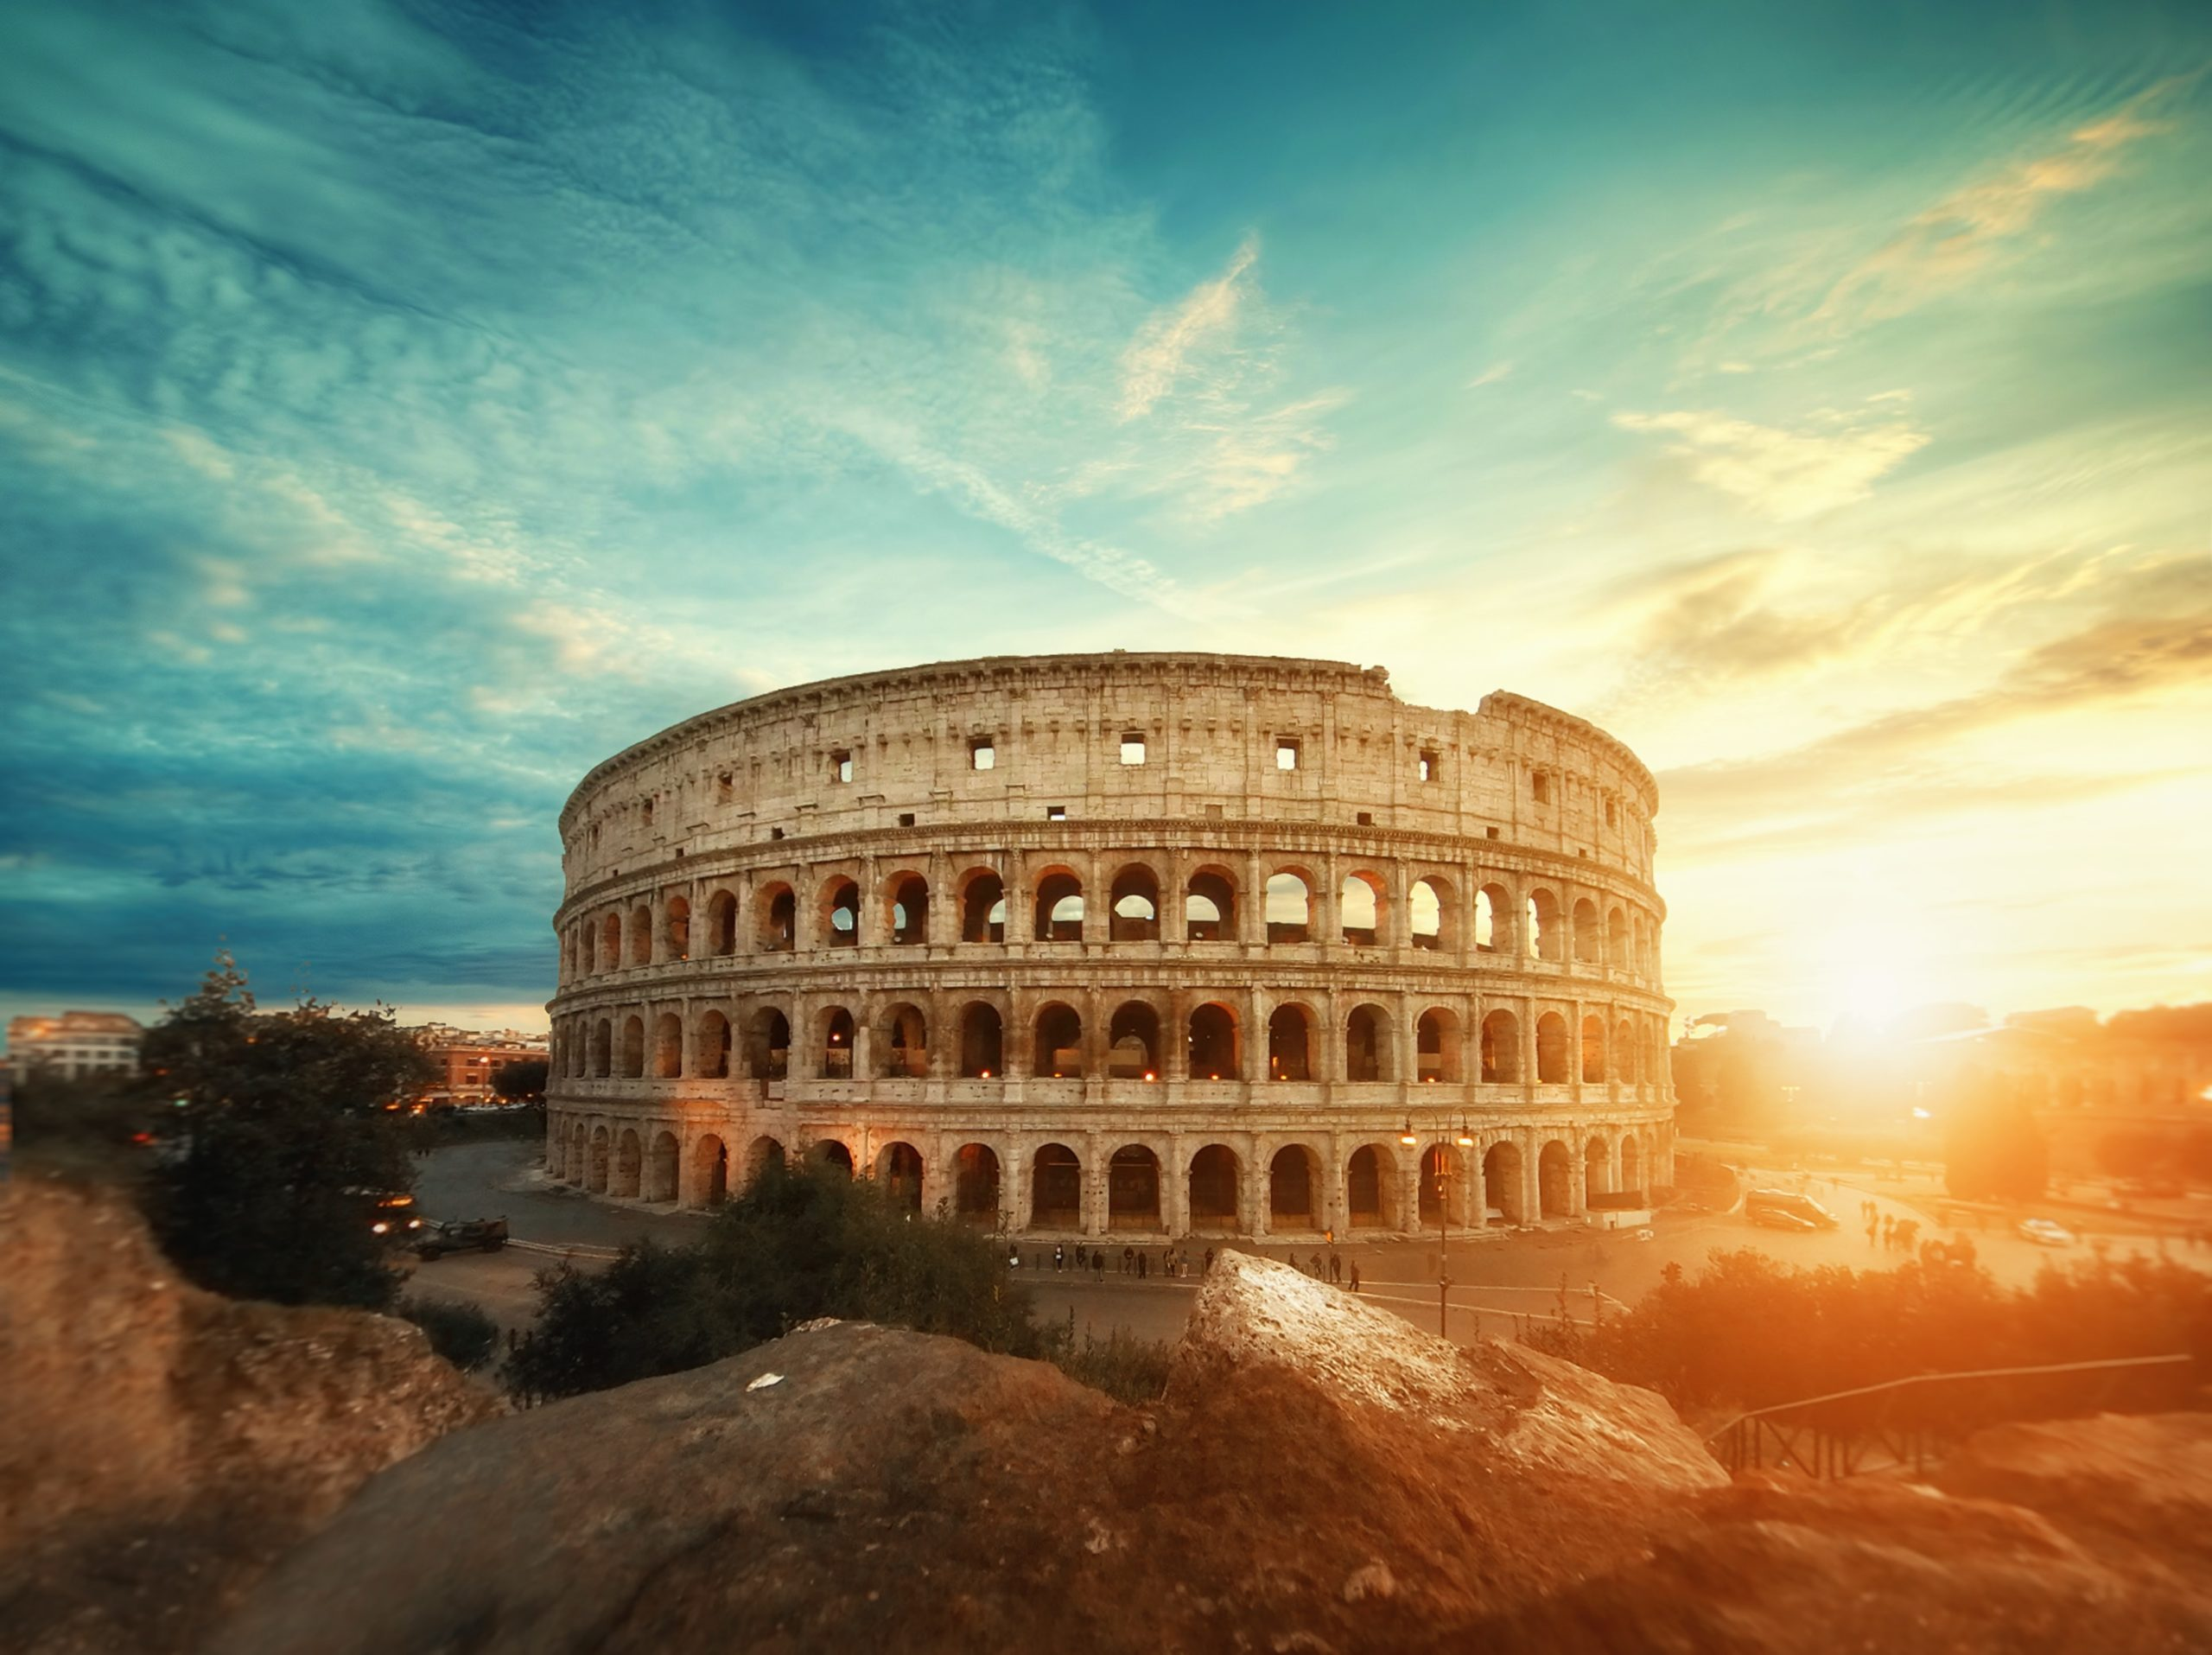 Picture of the grand Colosseum